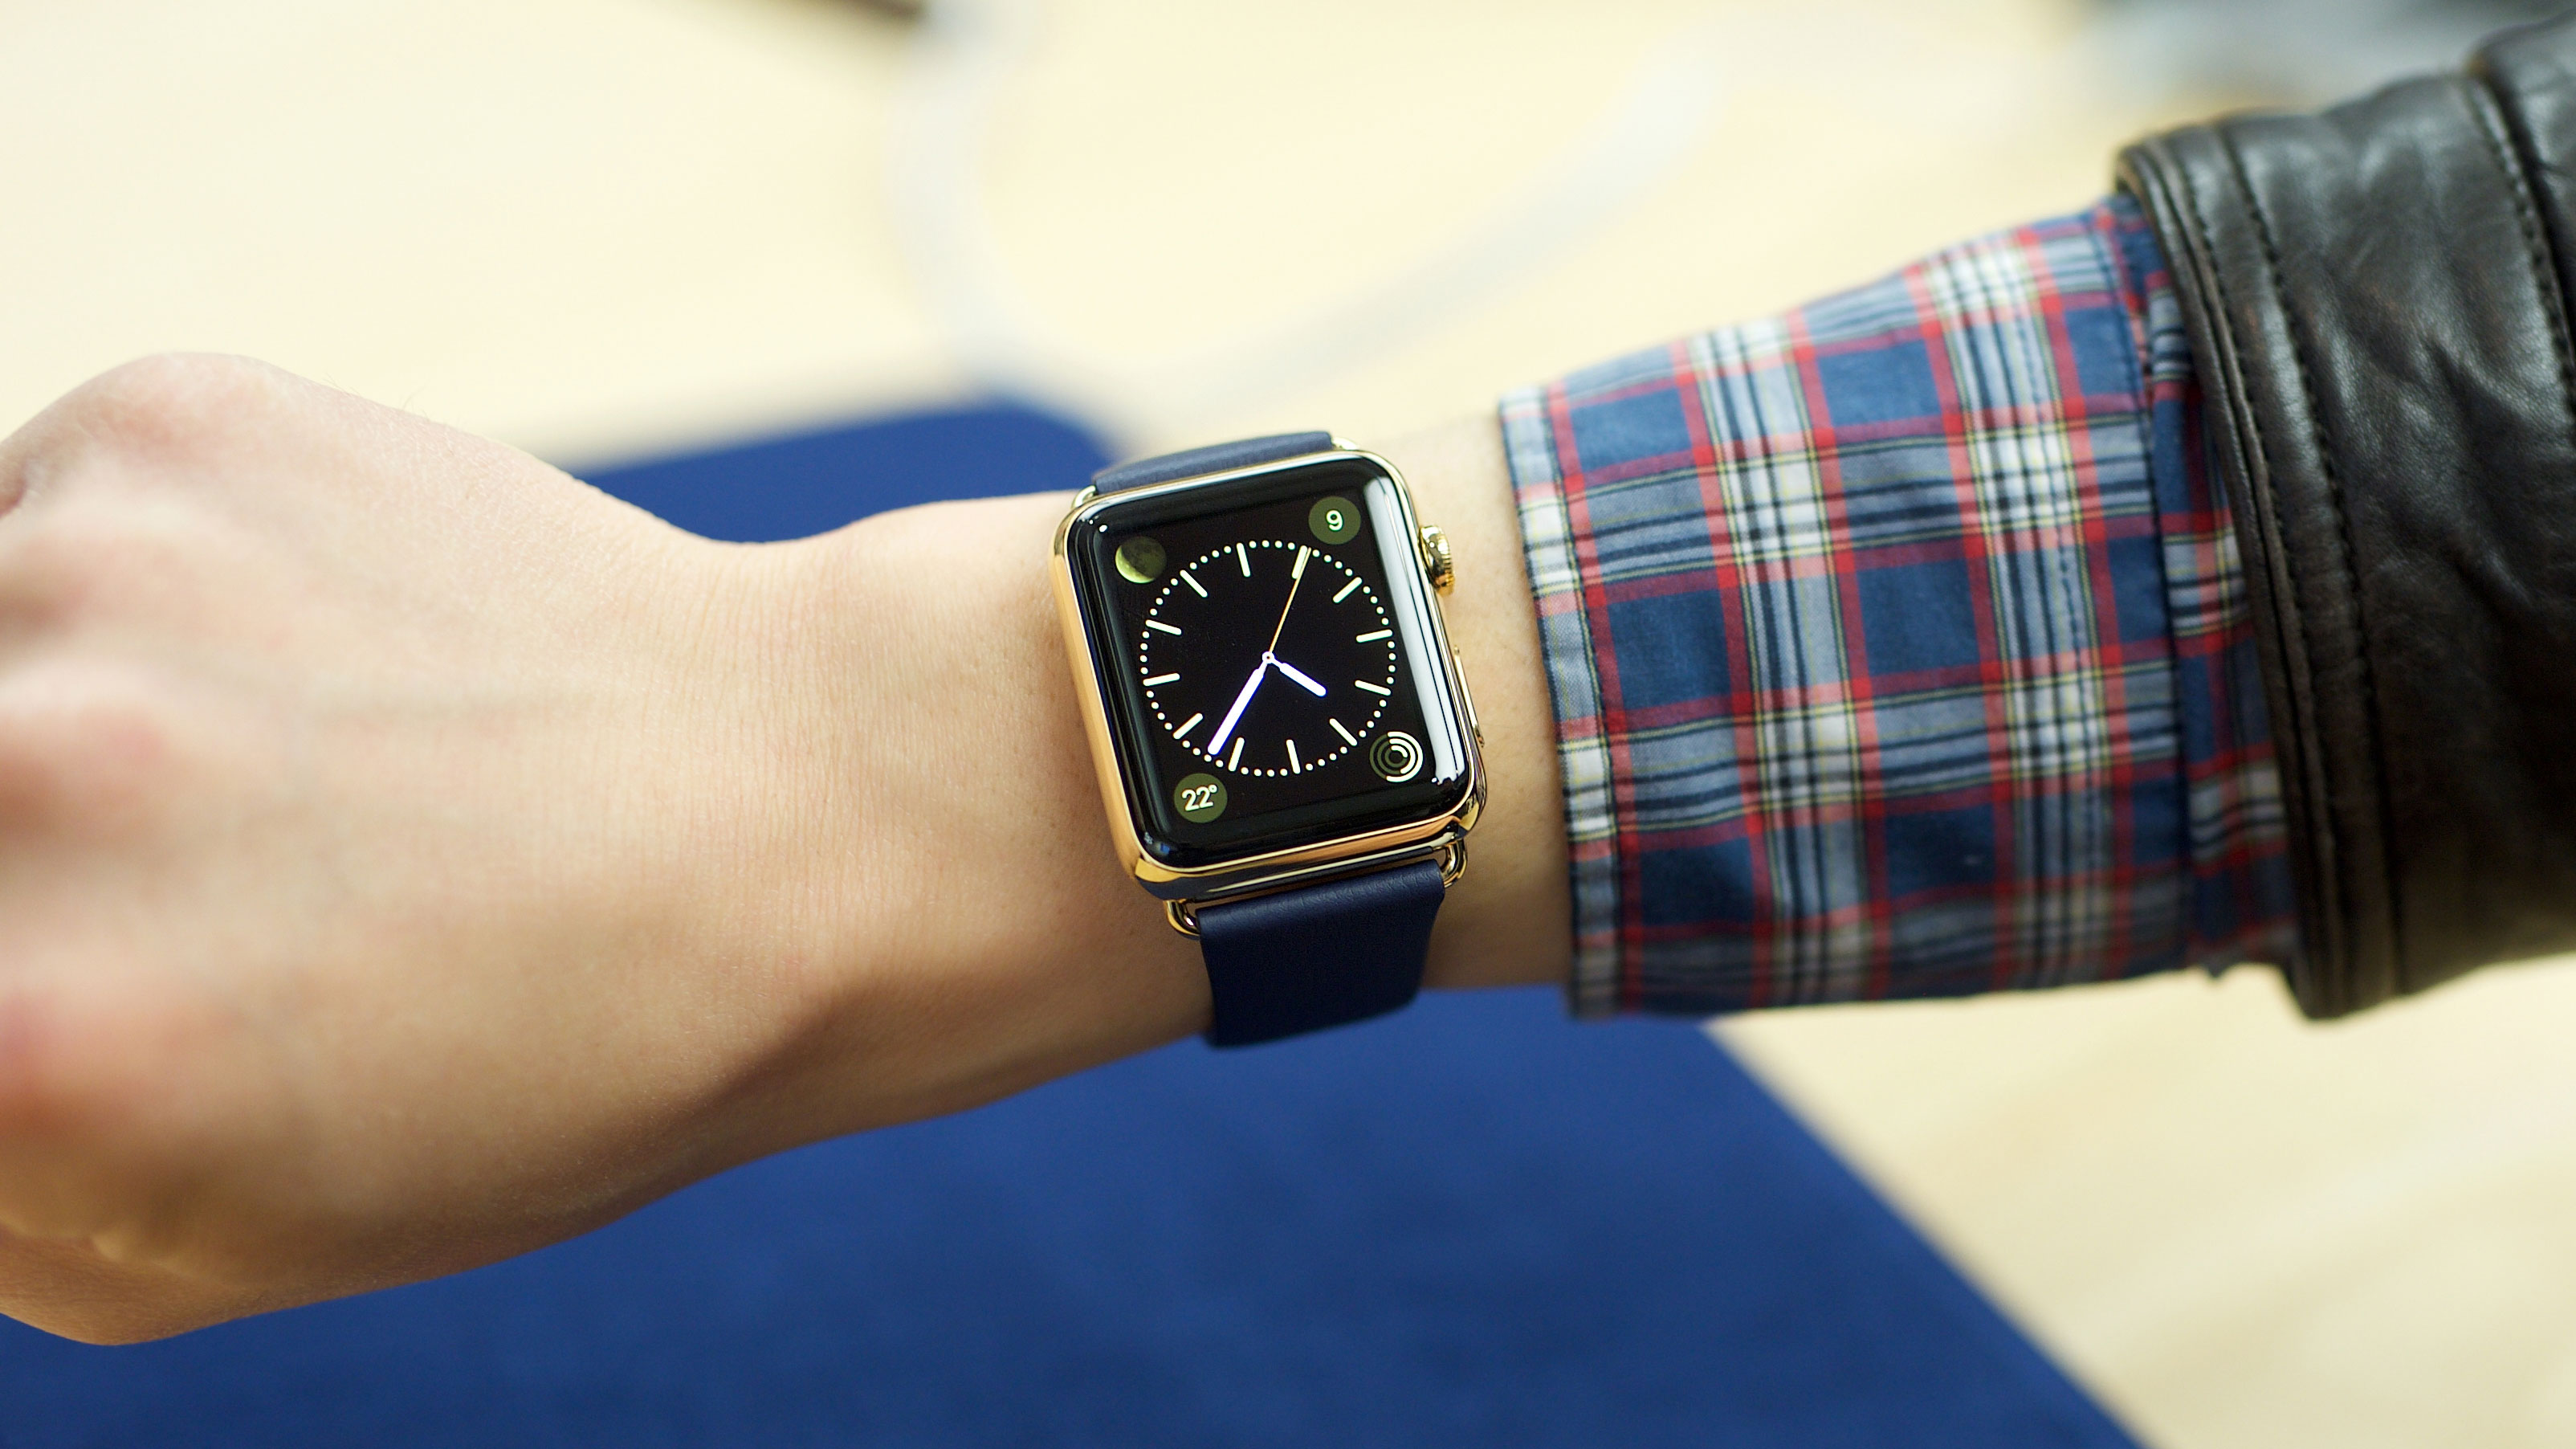 IMAGE DISTRIBUTED FOR APPLE - An excited customer tries on the Apple Watch Edition at the Eaton Centre Apple Store on Friday, April 10, 2015 in Toronto. (Photo by Ryan Emberley/Invision for Apple/AP Images)